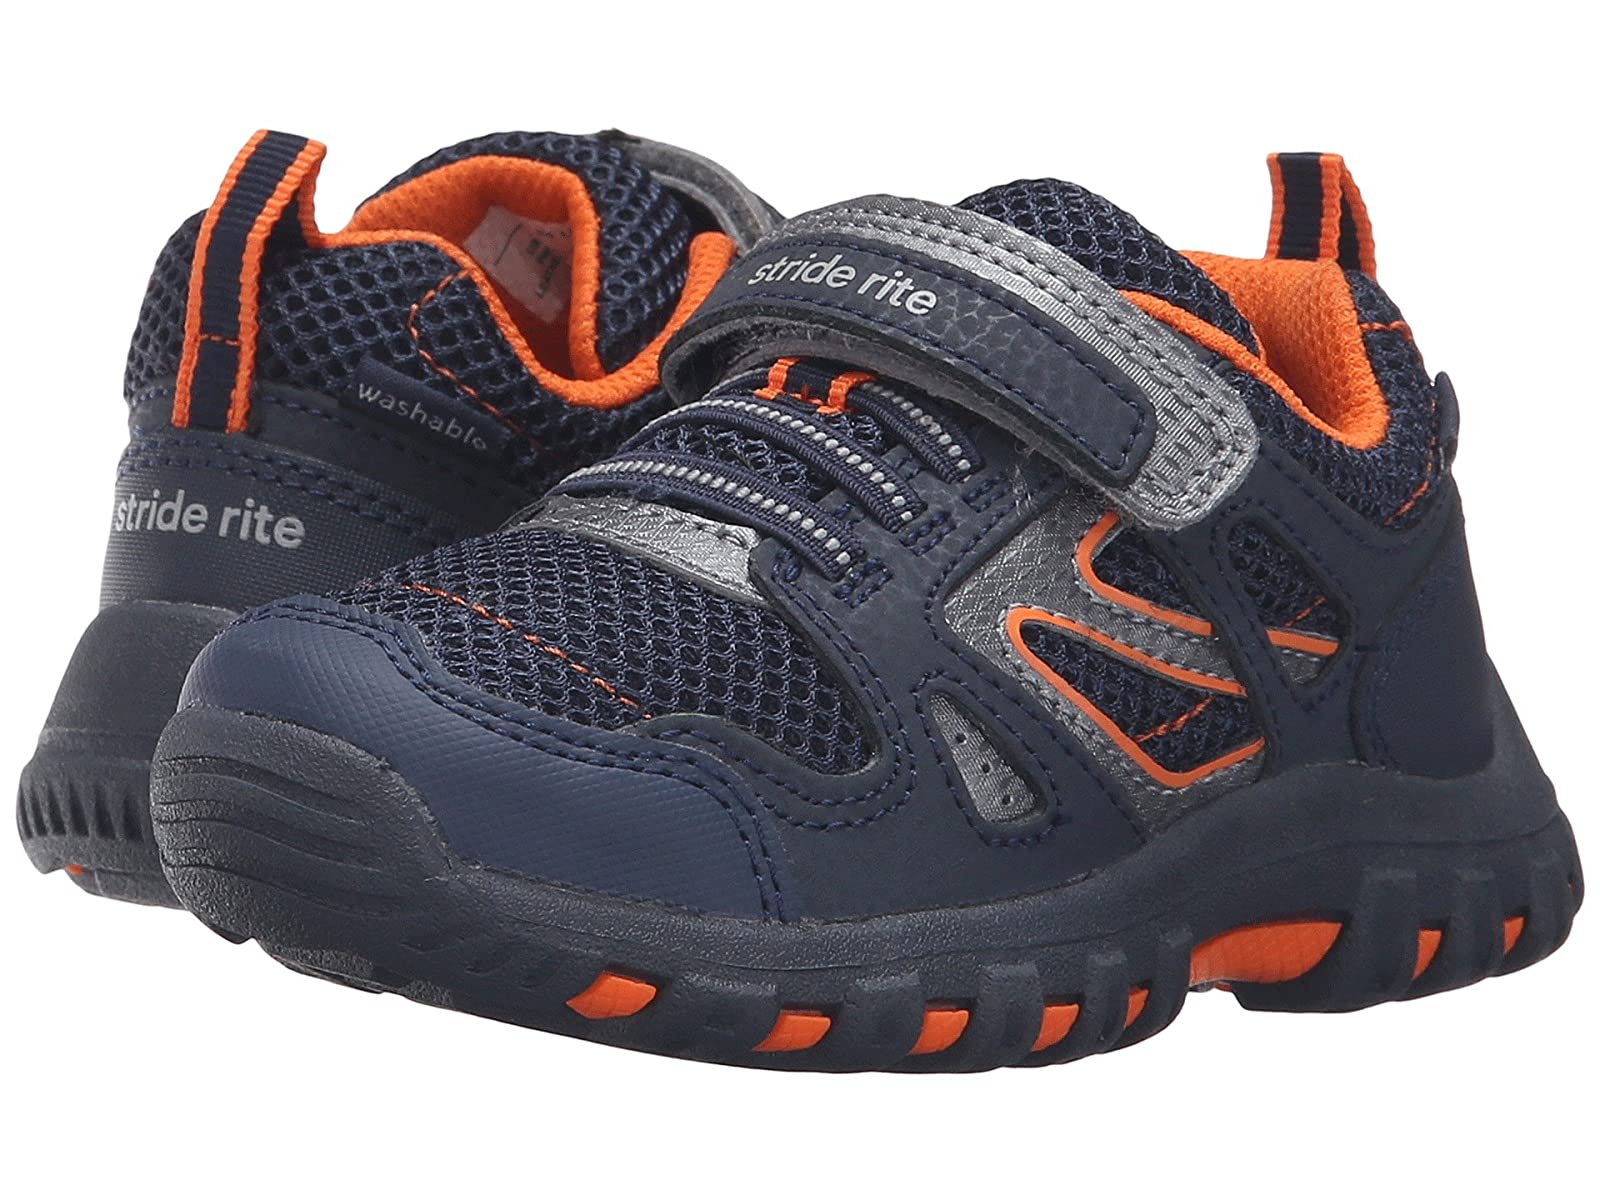 Stride Rite Made 2 Play Artin (Toddler/Little Kid/Big Kid)Atmospheric grades have affordable shoes